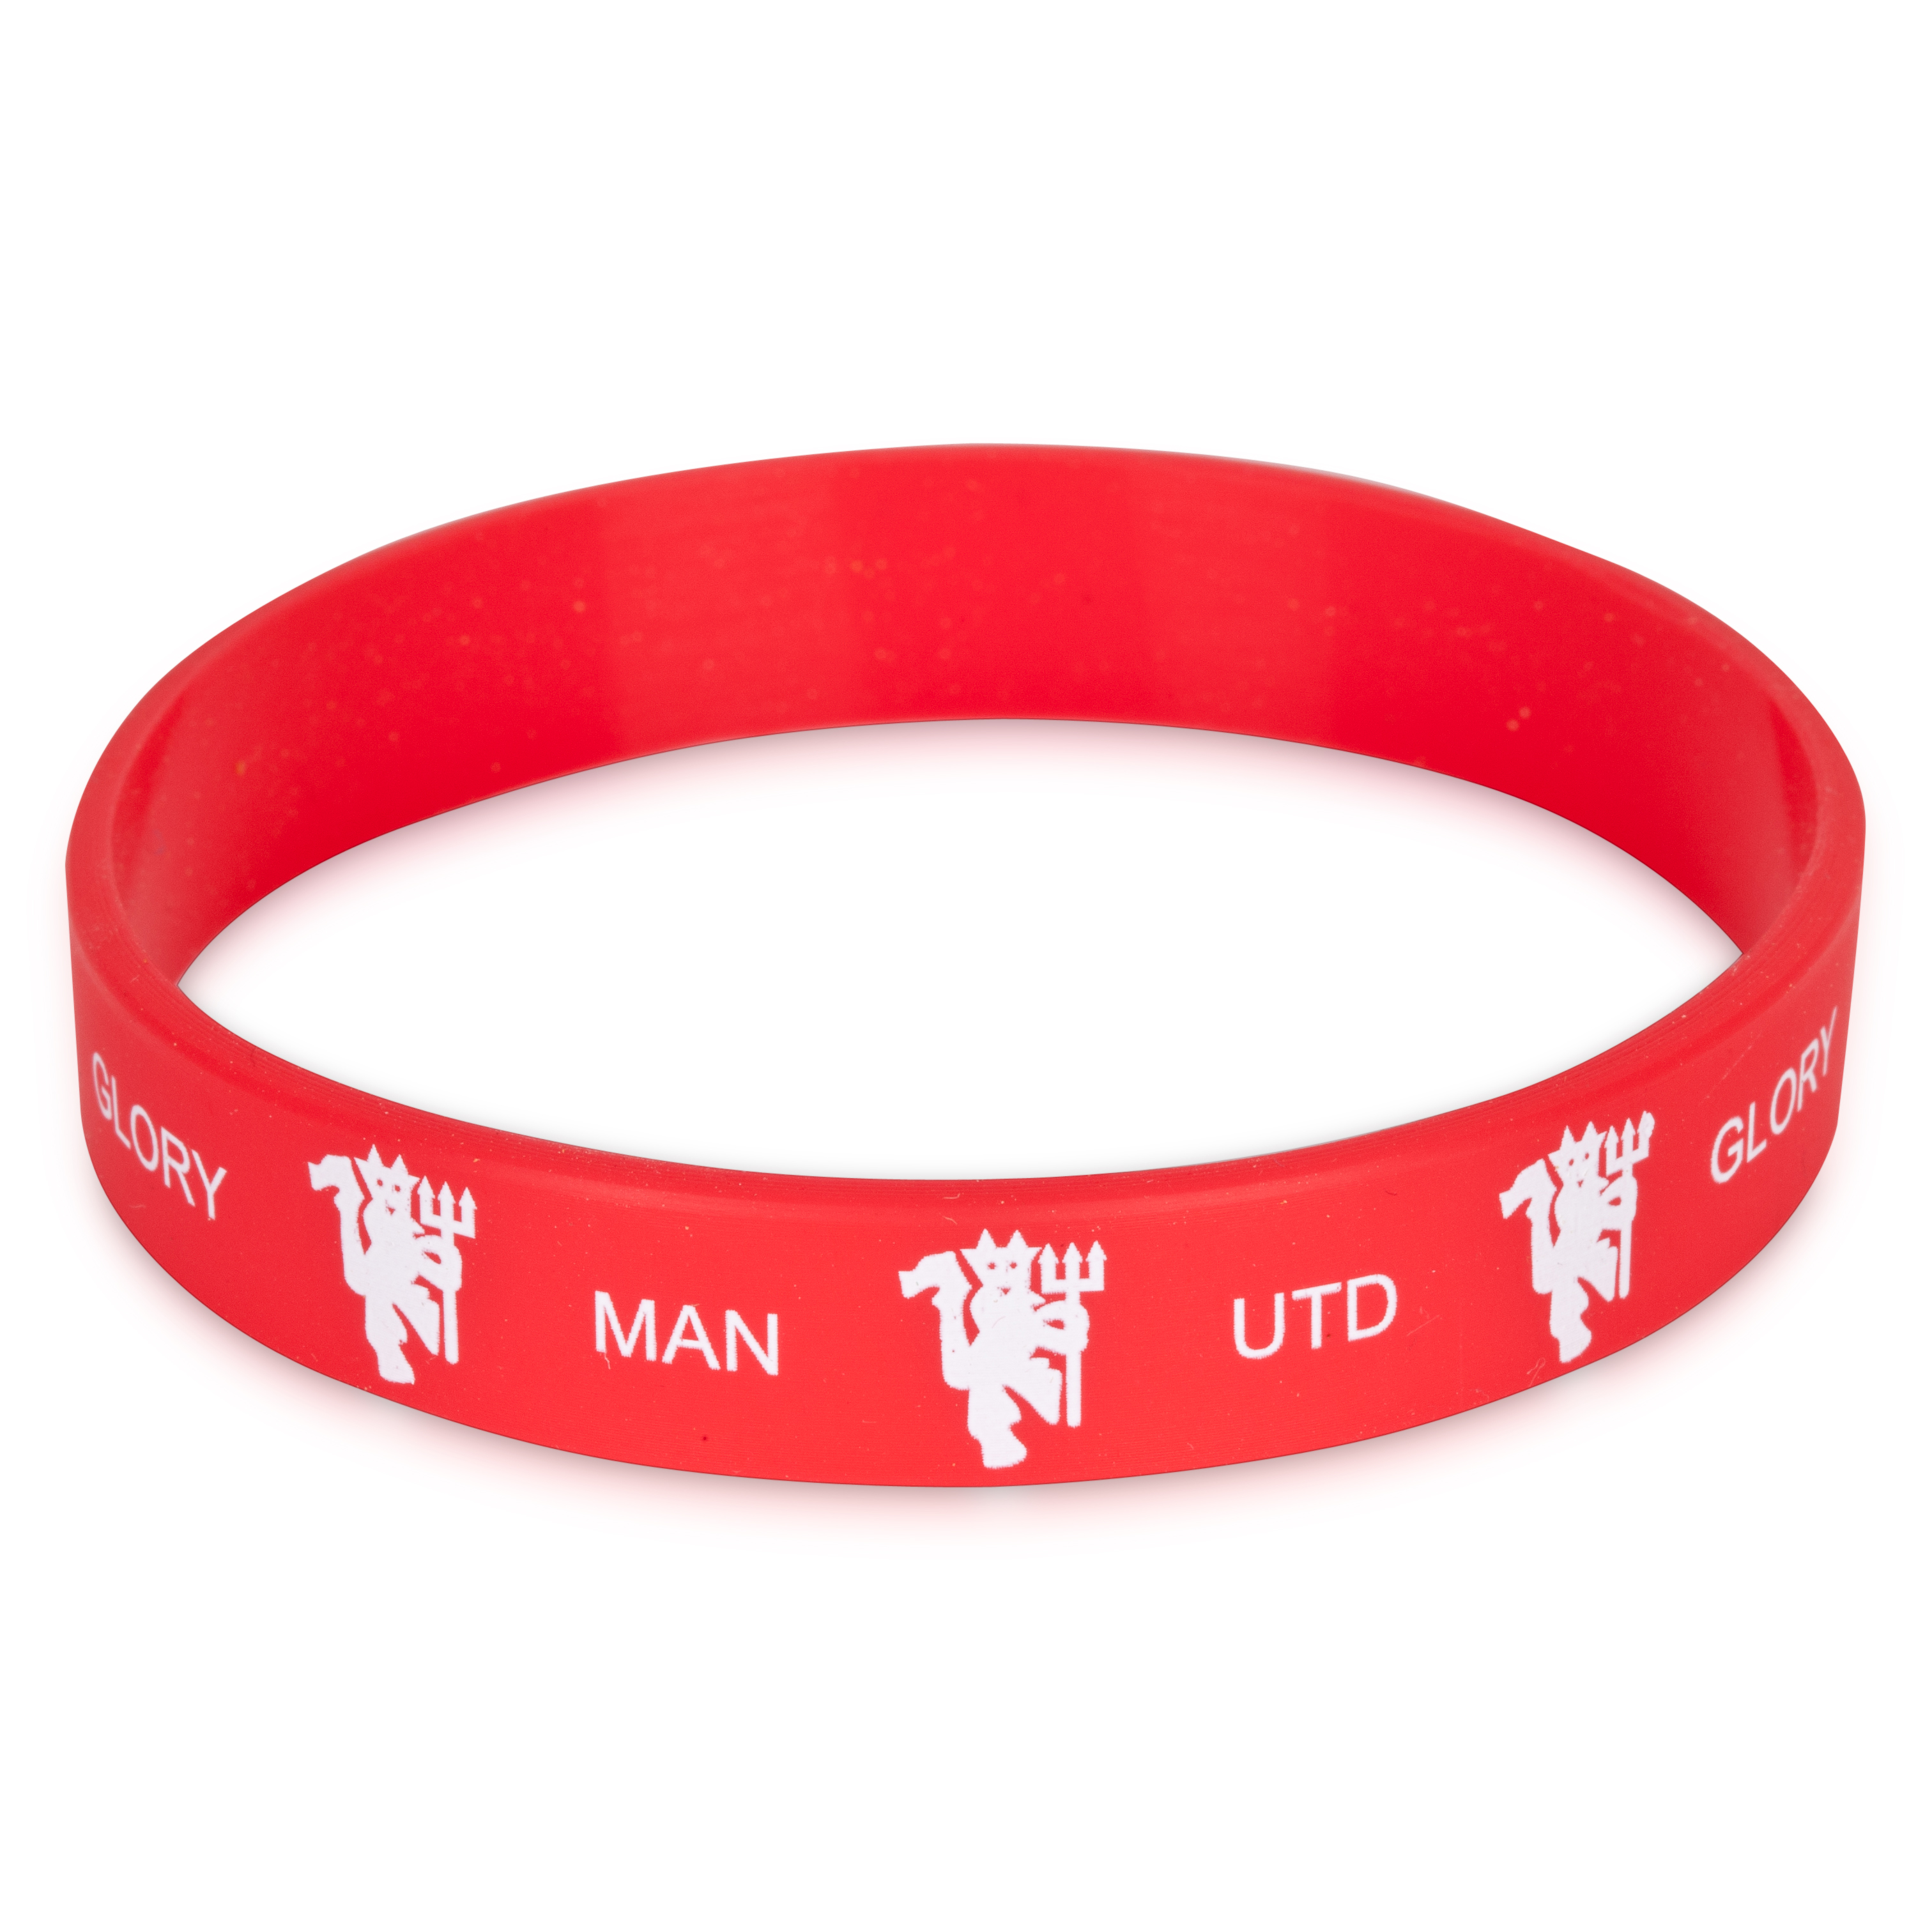 Manchester United Rubber Wristband - 12mm Width